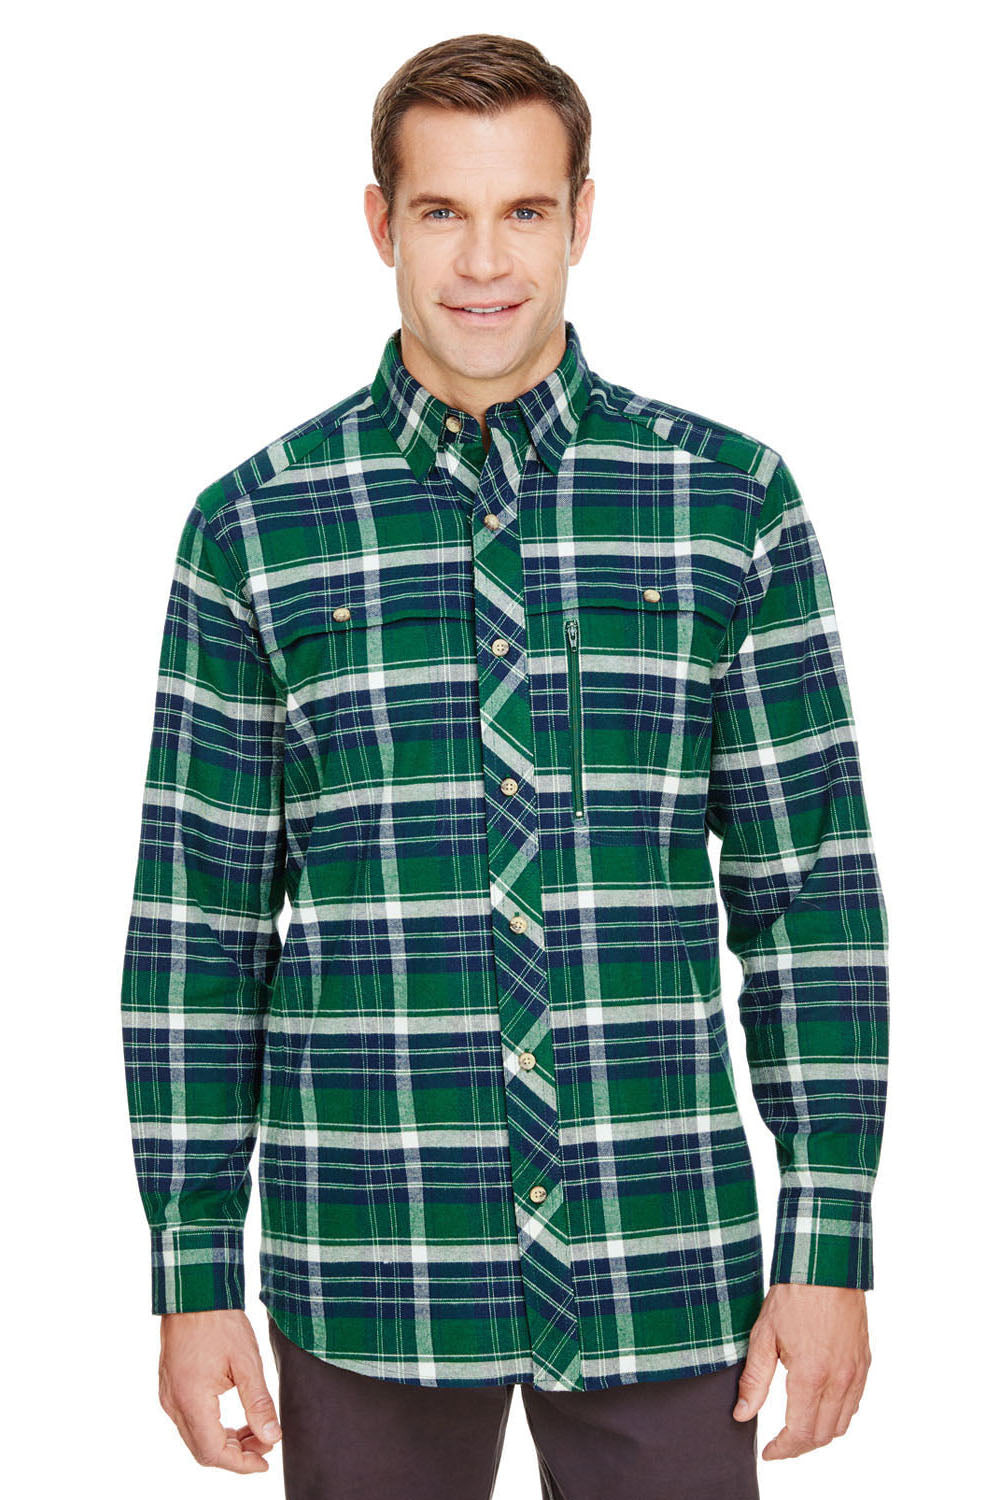 Backpacker BP7091 Mens Stretch Flannel Long Sleeve Button Down Shirt w/ Double Pockets Forest Green Front